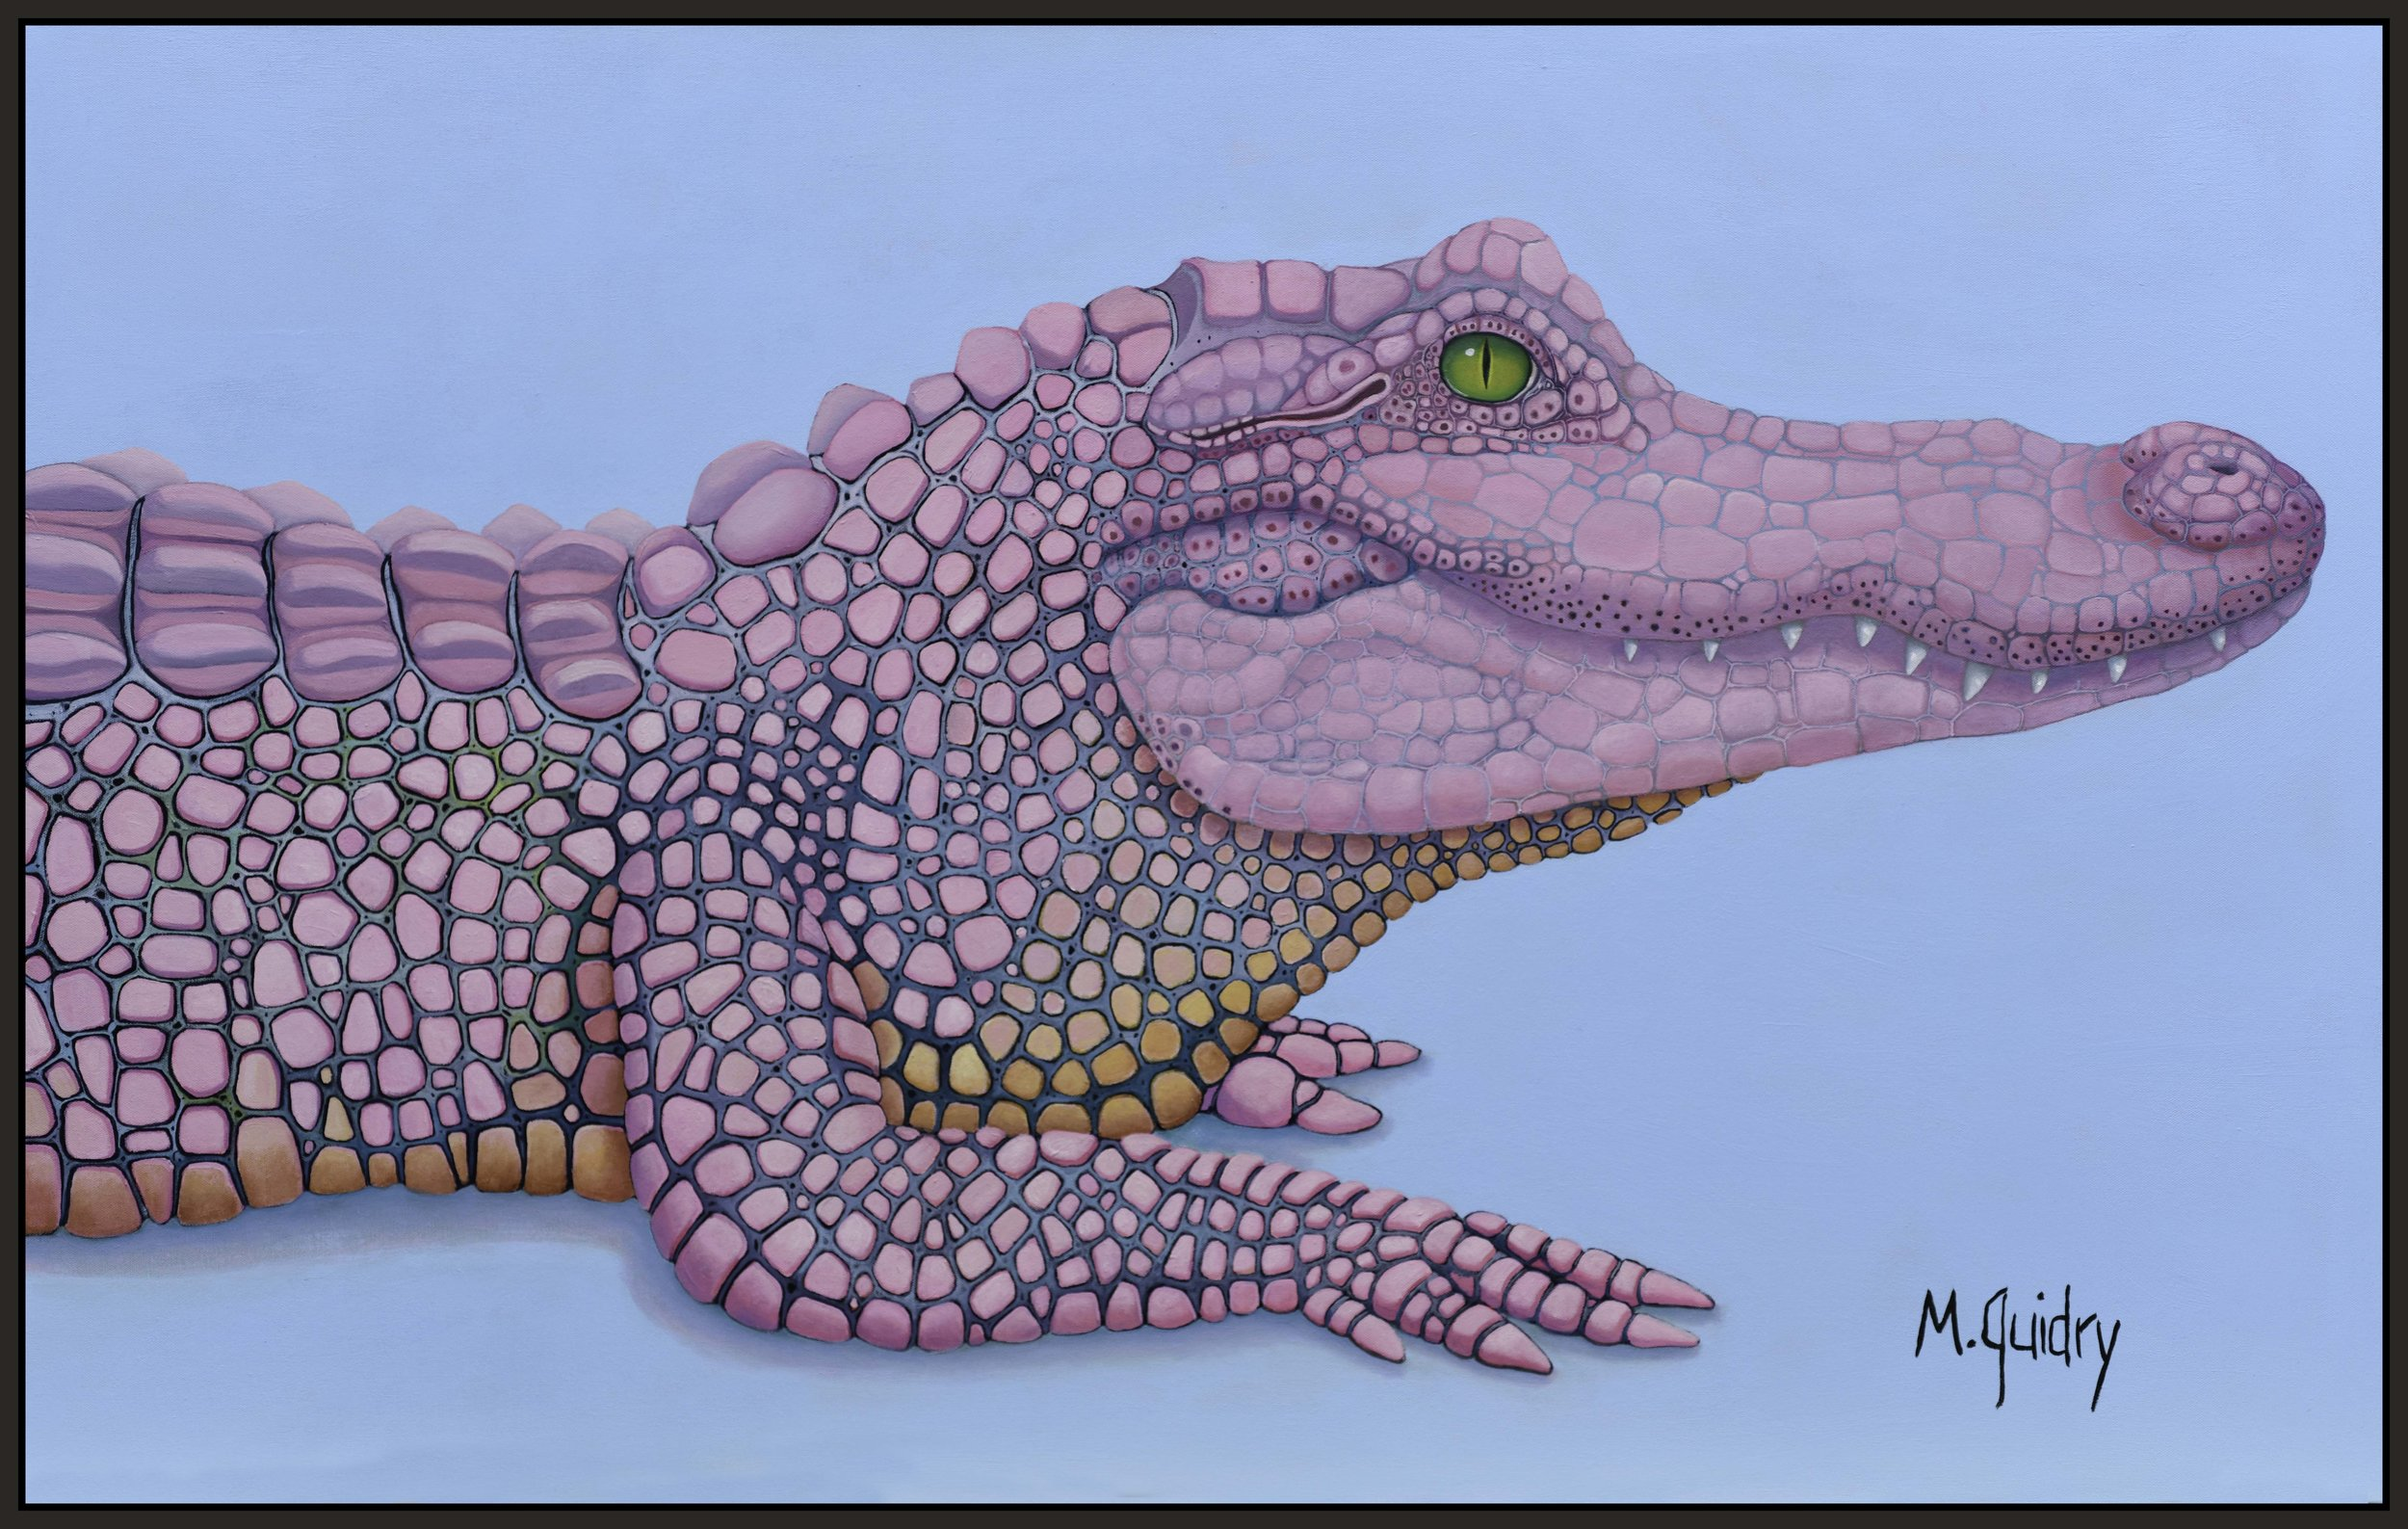 pink-alligator-m-michael-guidry-new-orleans-louisisna-artist-painting.jpg